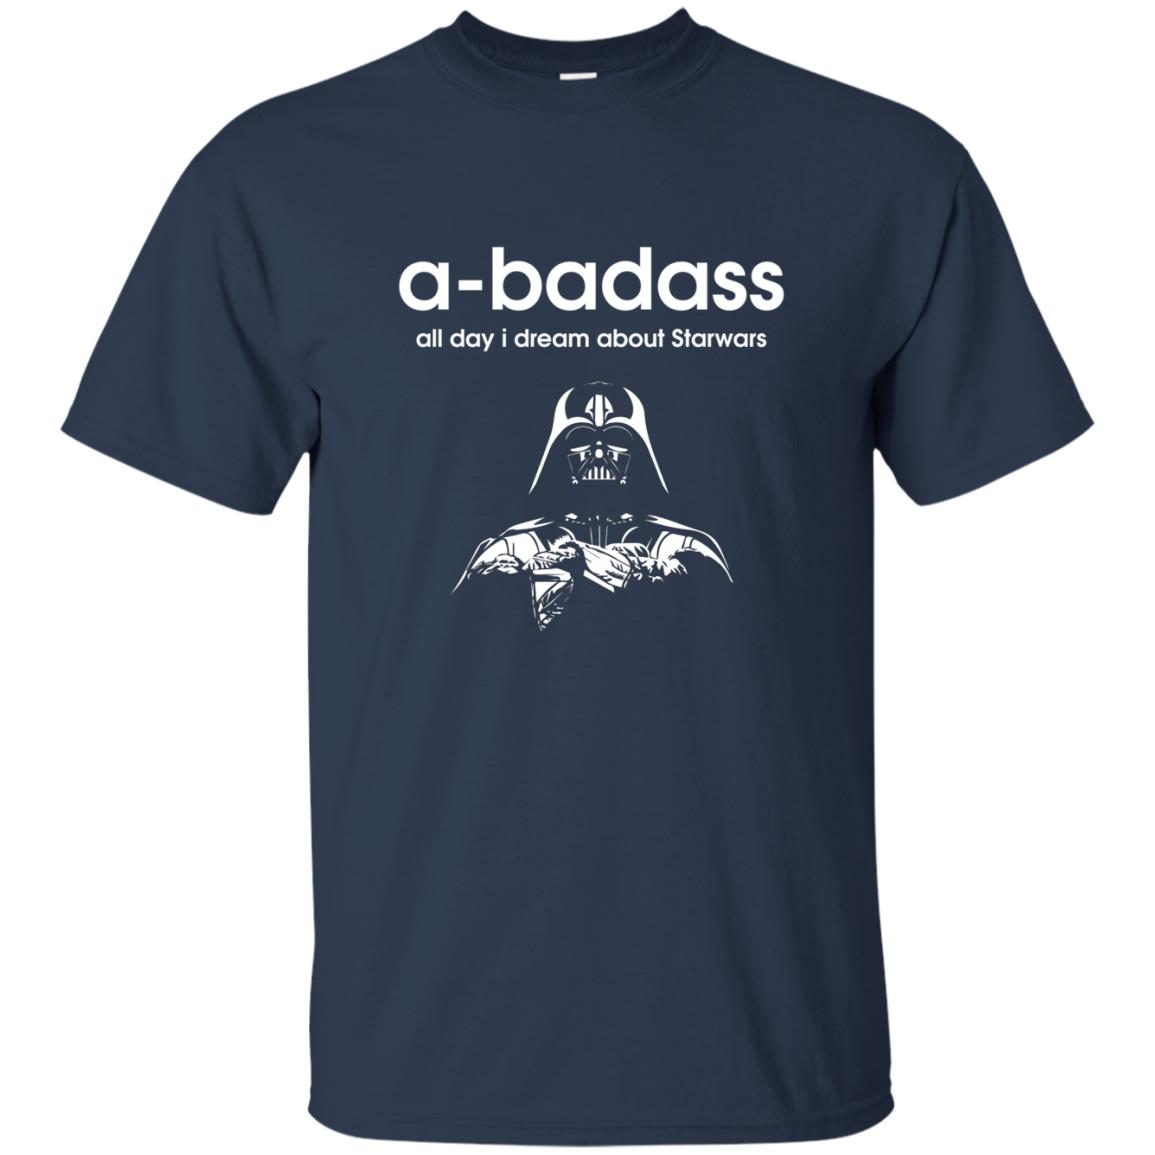 image 1183 - A-badass all day i dream about Starwars shirt, hoodie, tank